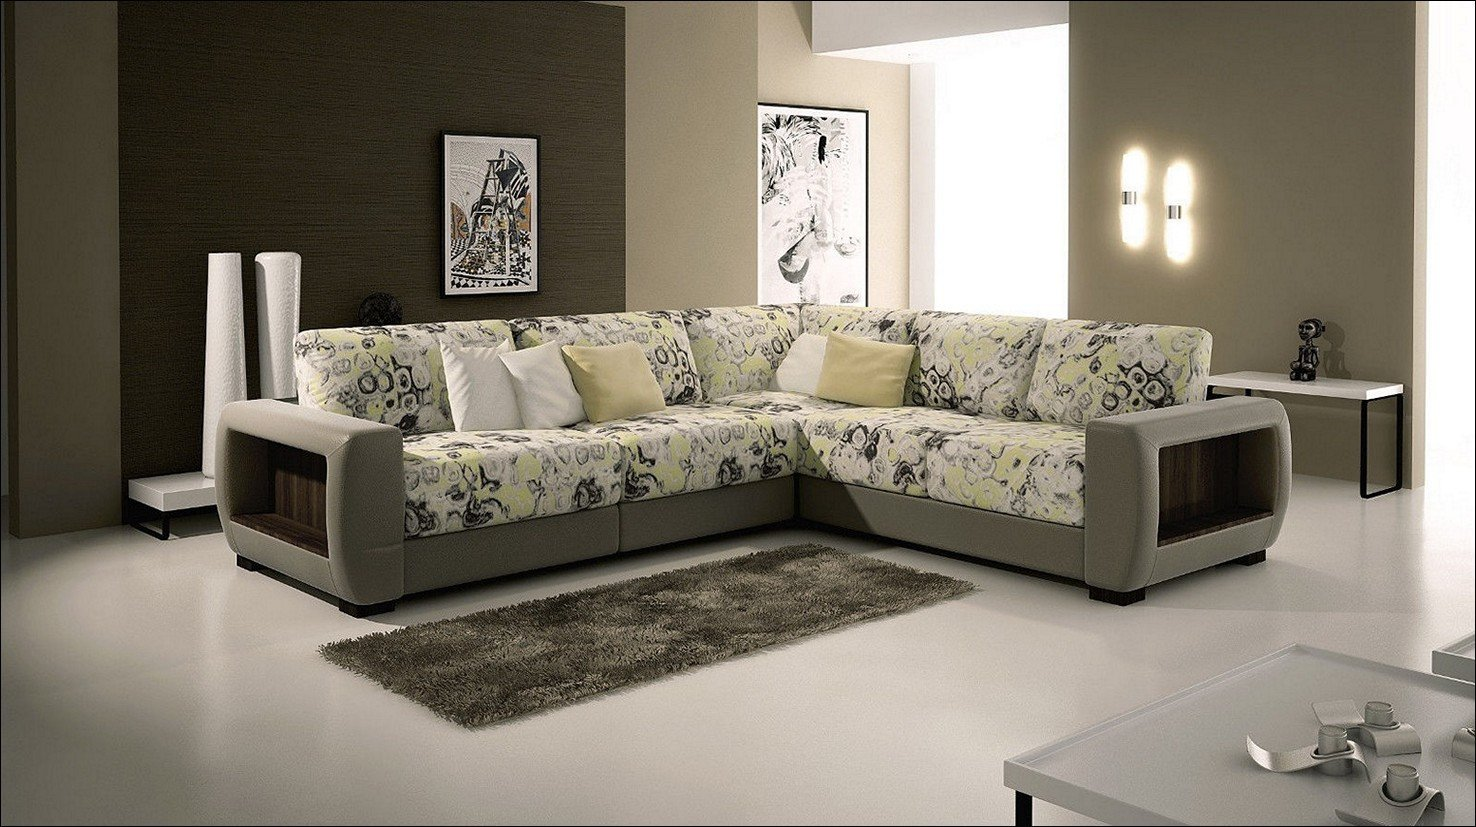 Big Wall Decor Living Room Awesome Decorating Large Wall Living Room Oversized Wall Art